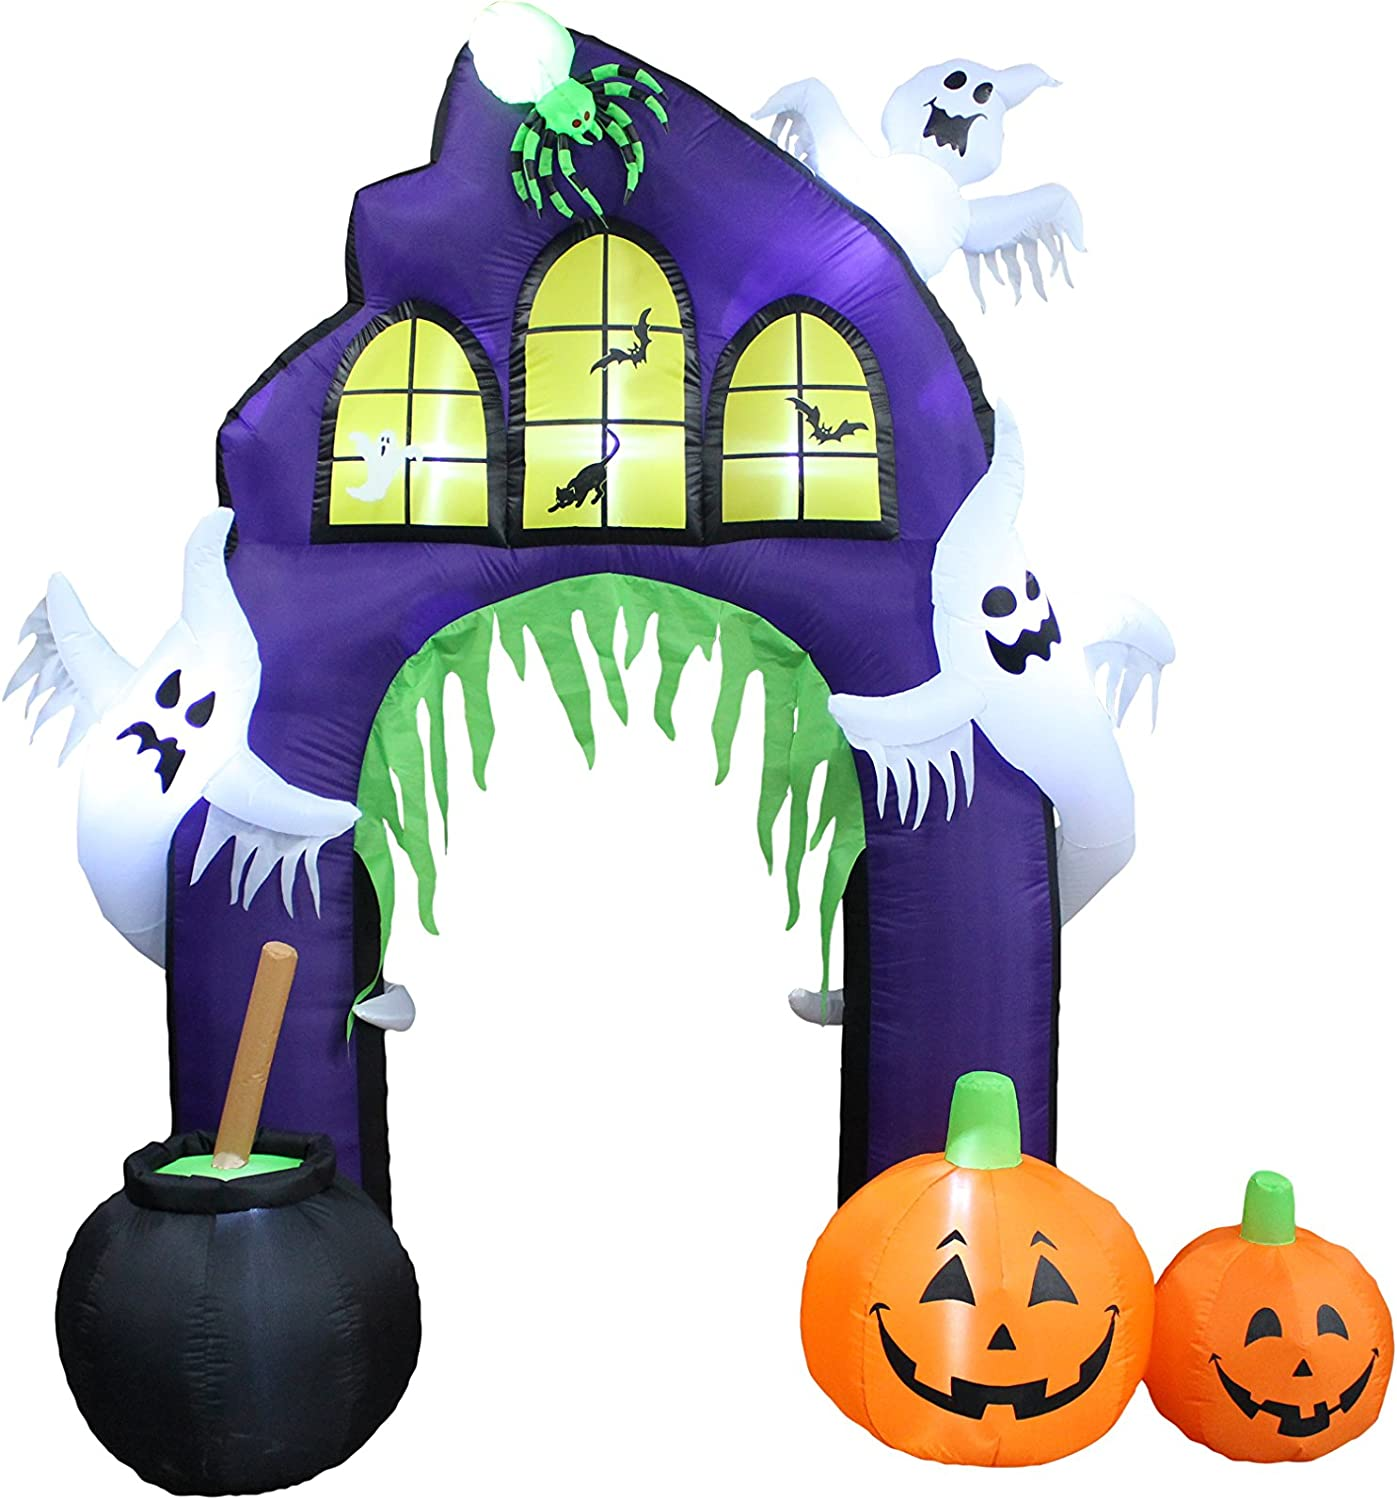 9 Foot Tall Halloween Inflatable Castle Archway with Pumpkins and Ghosts LED Lights Decor Outdoor Indoor Holiday Decorations Blow up Lighted Yard